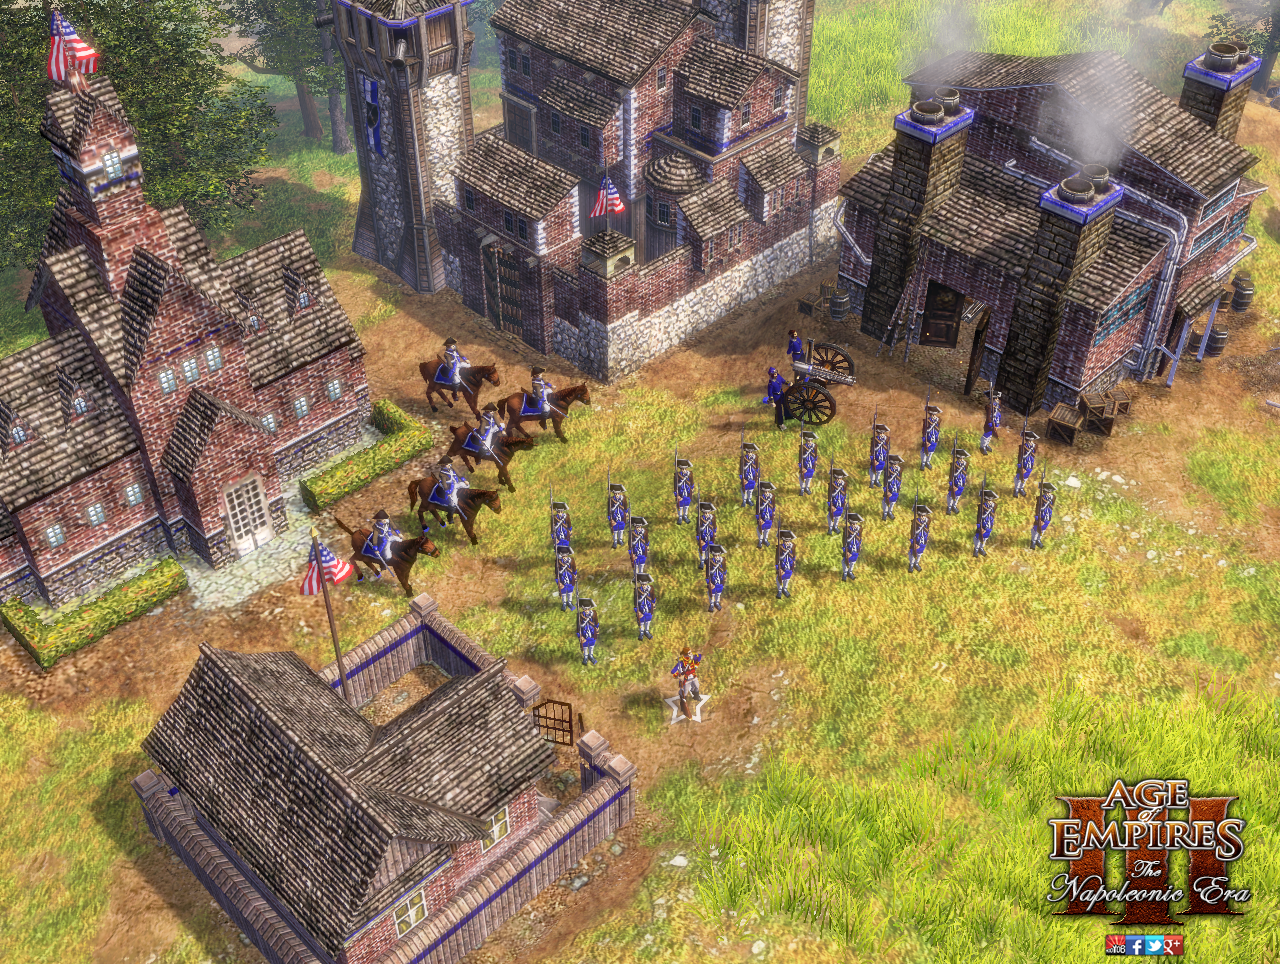 New Us Buildings Image Napoleonic Era Mod For Age Of